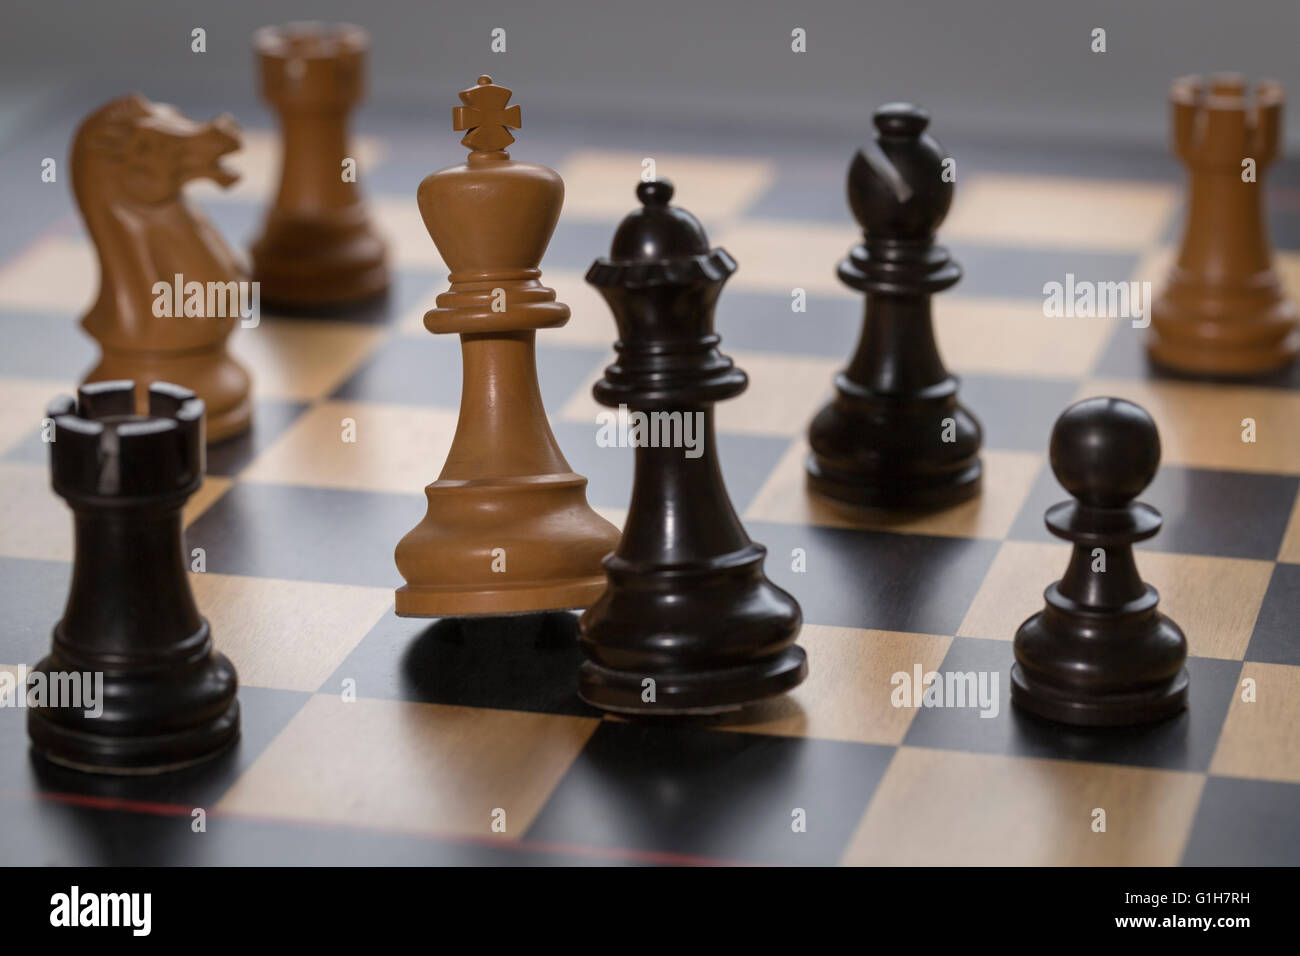 a chess game - Stock Image